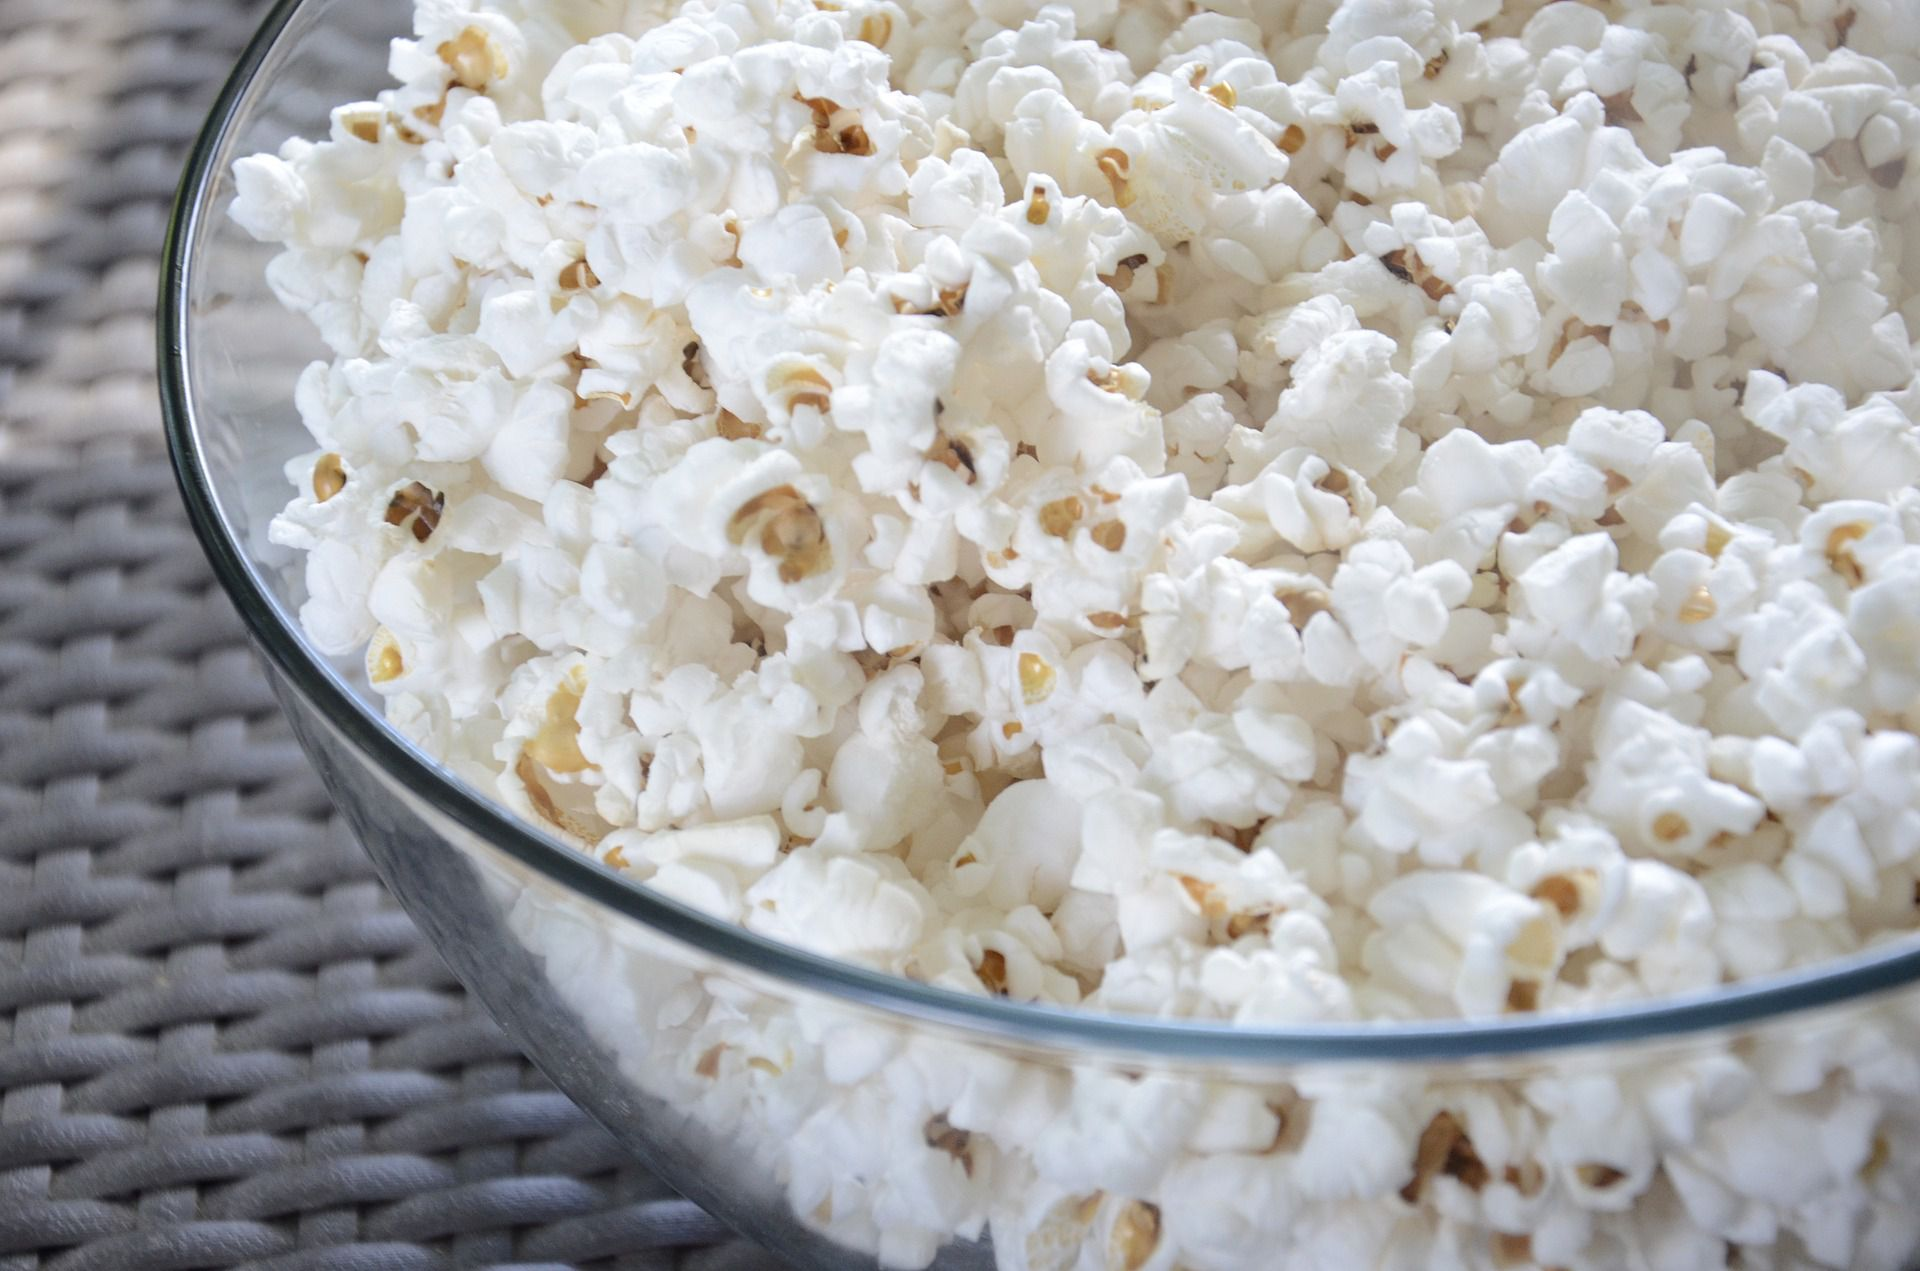 Food science tricks to make the perfect popcorn | Popular Science